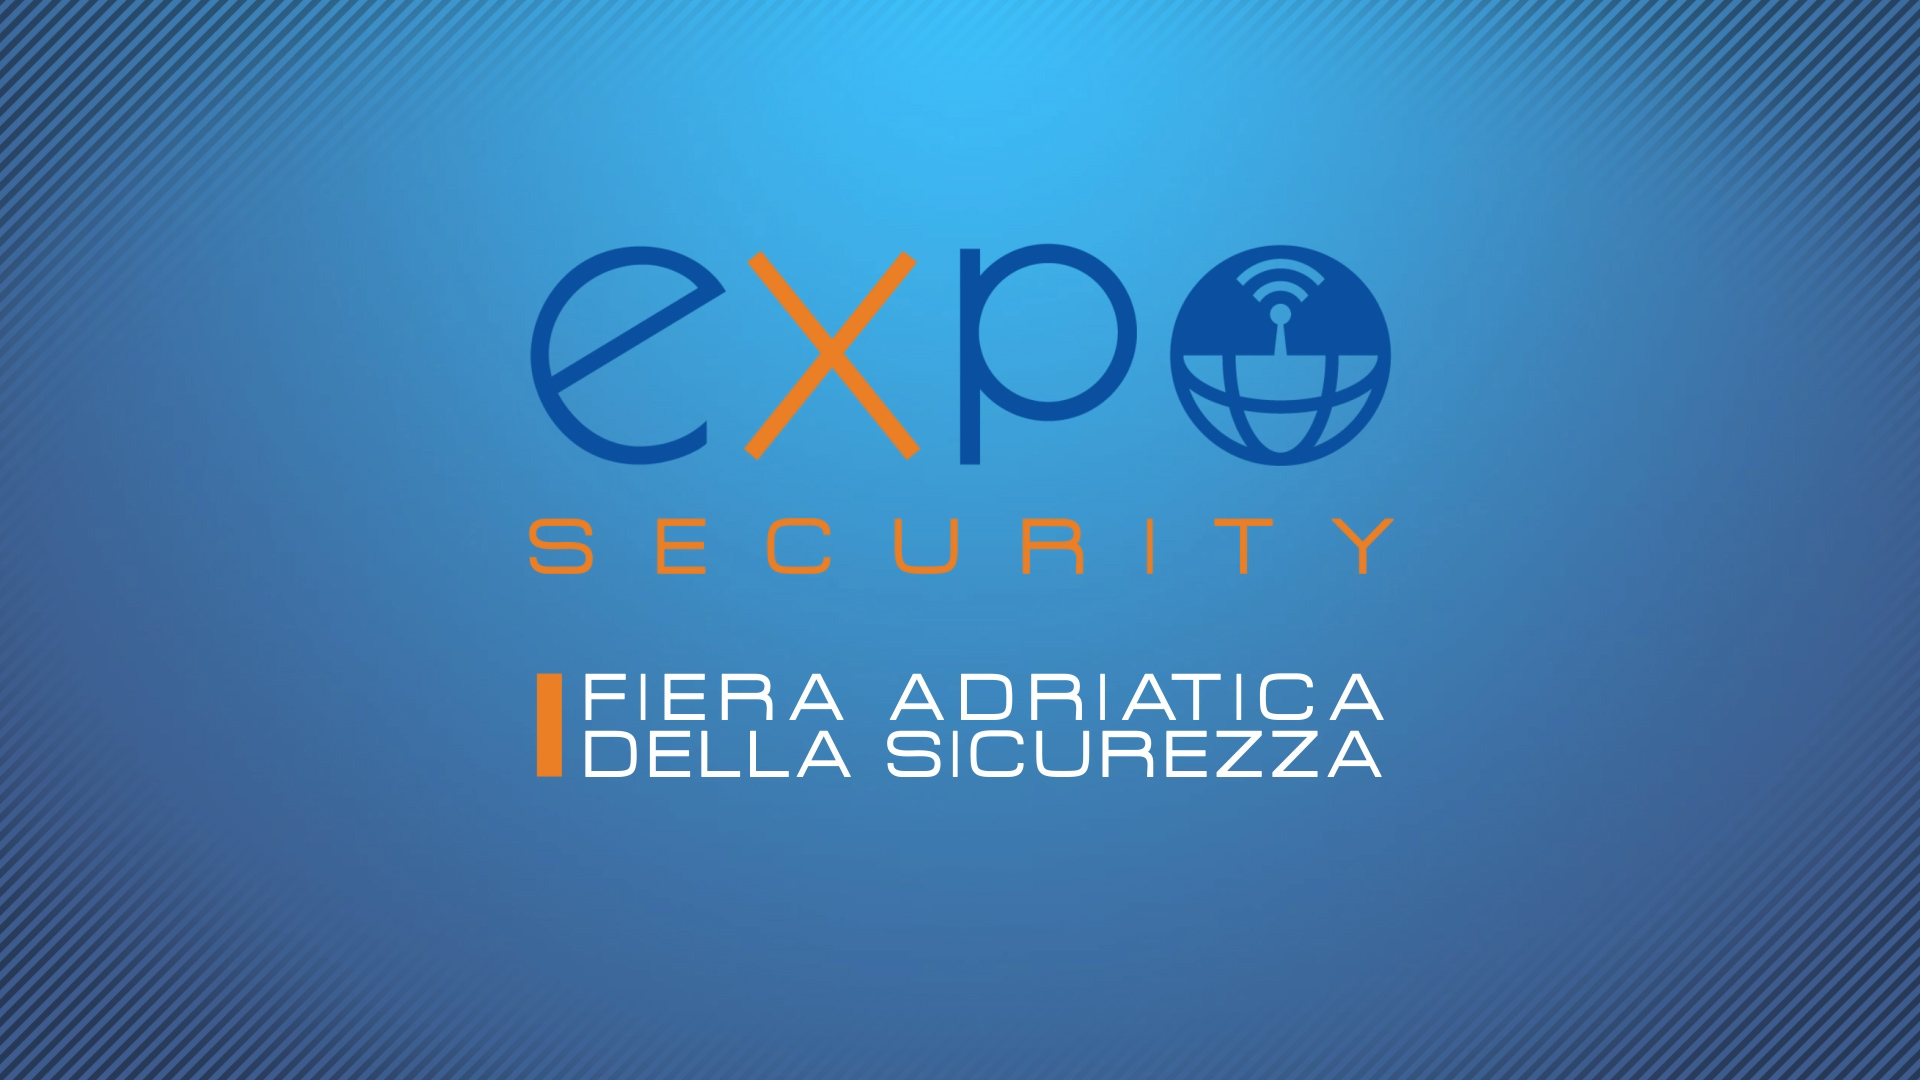 Spot_Expo_Security_2018.00_00_04_01.Immagine002